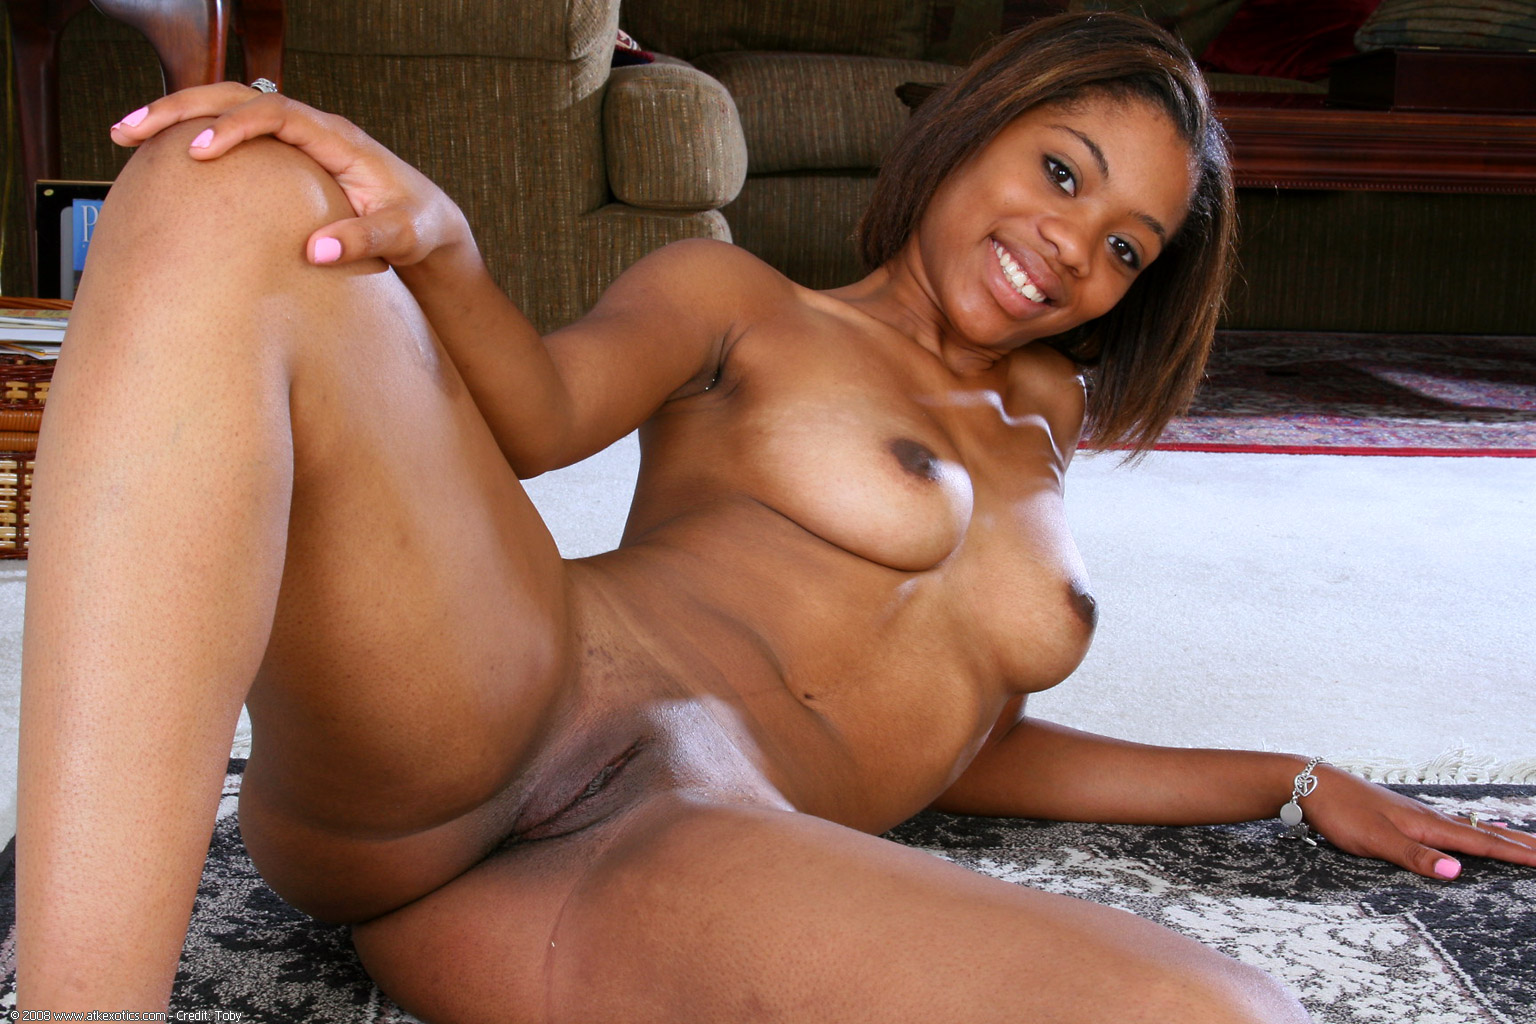 Free full black porn videos that